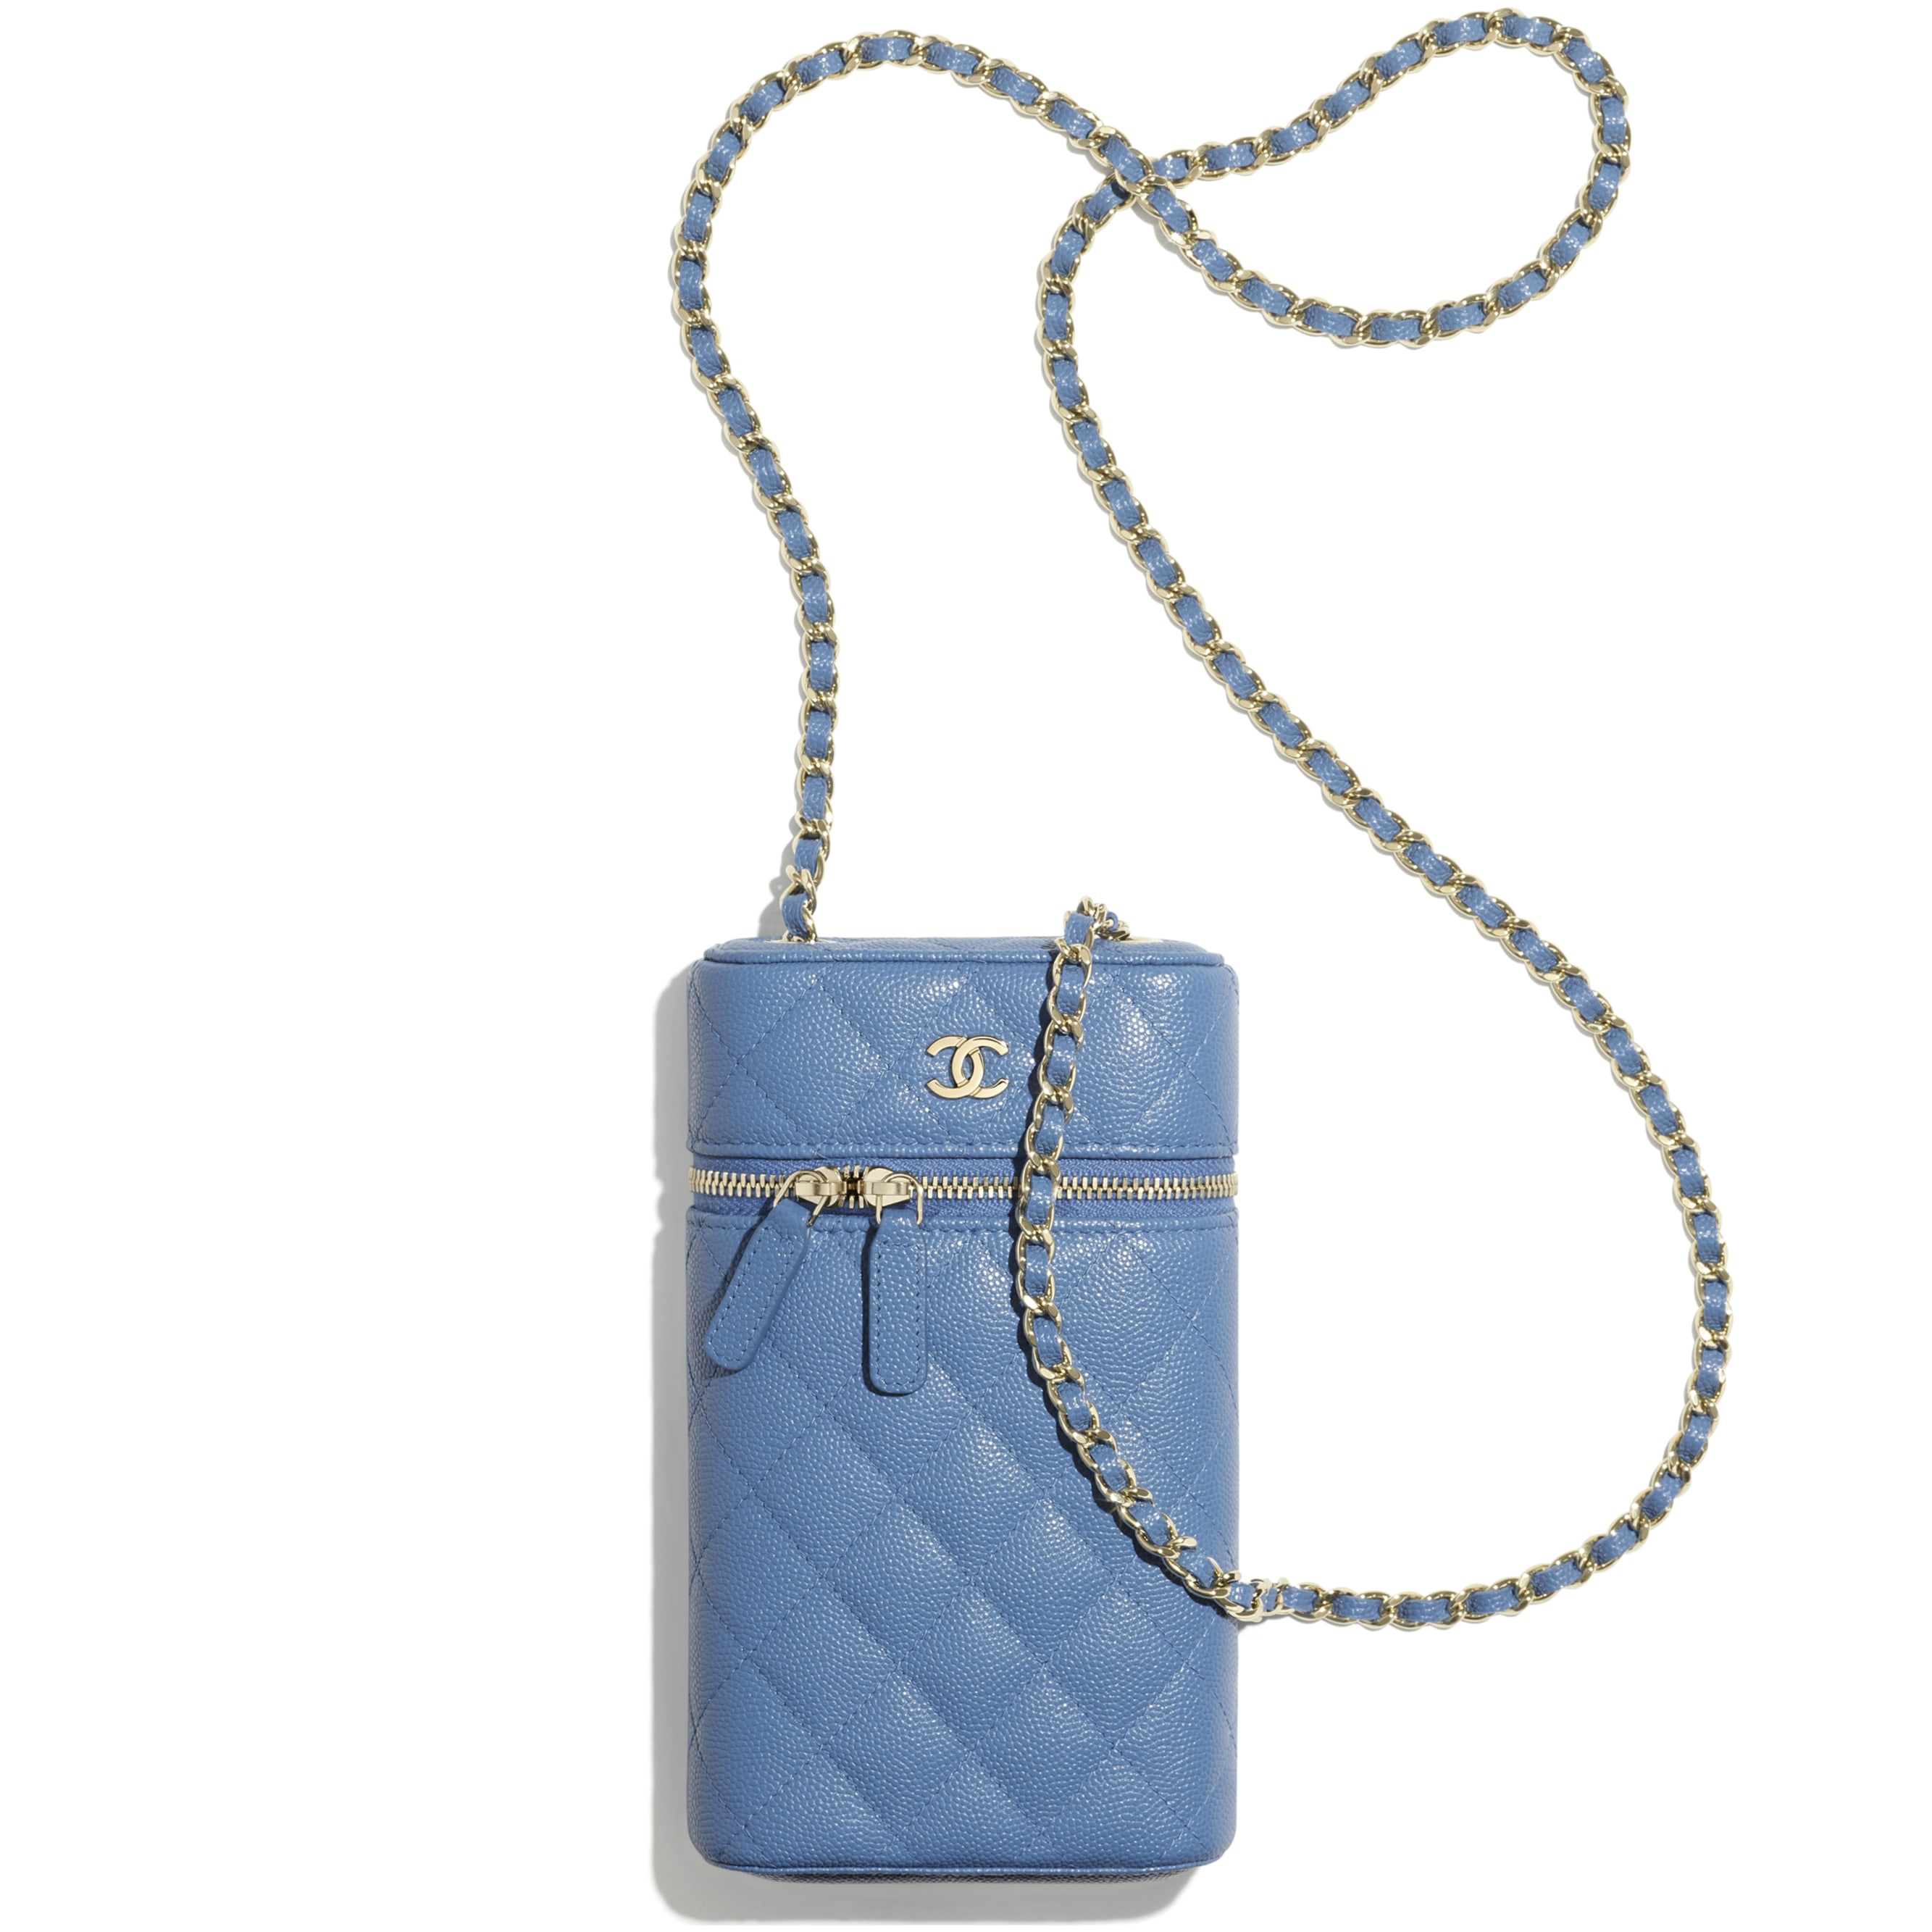 Classic Vanity Phone Holder with Chain - Blue - Grained Calfskin & Gold-Tone Metal - CHANEL - Other view - see standard sized version